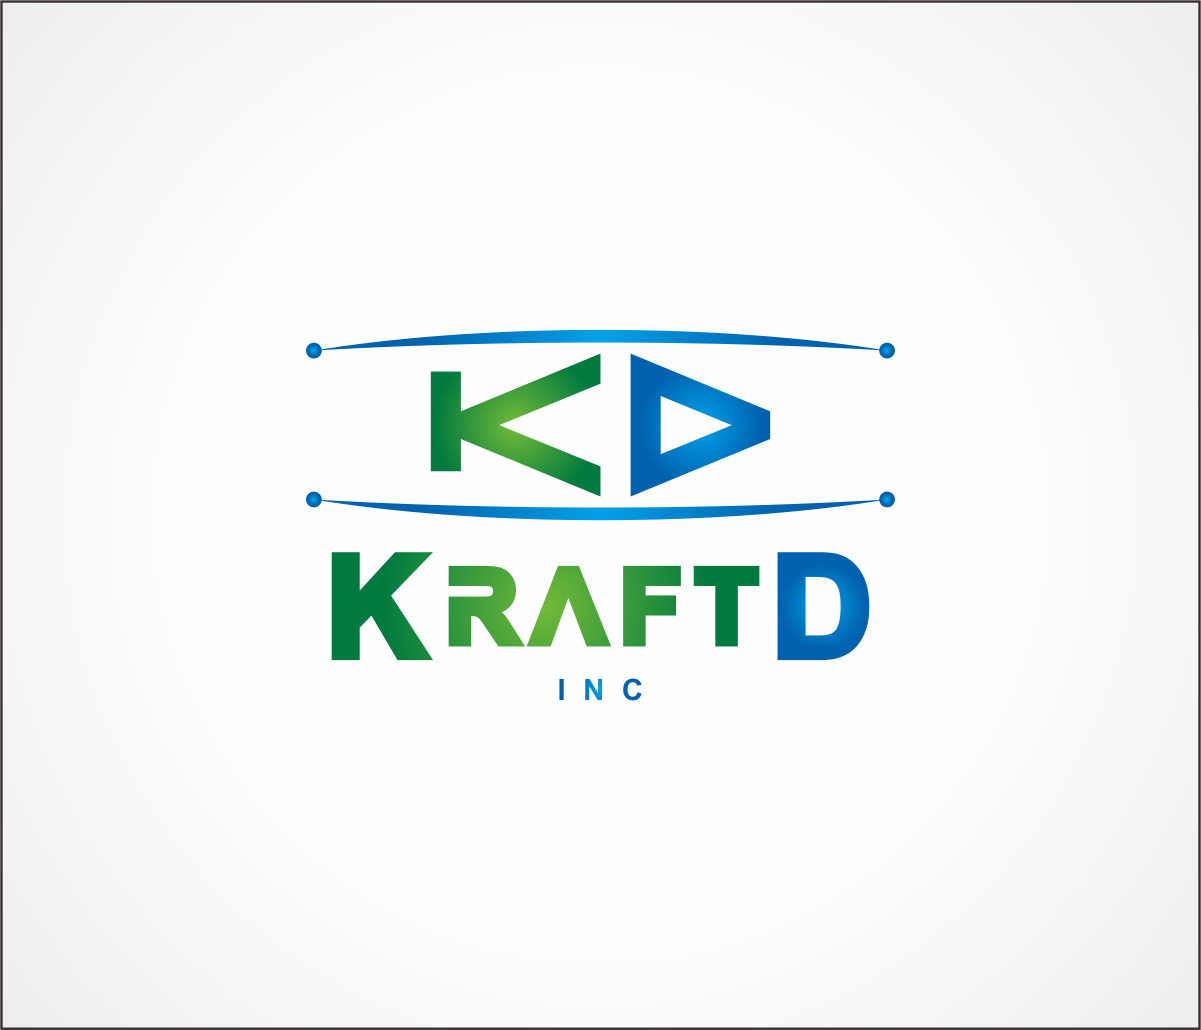 Logo Design by Armada Jamaluddin - Entry No. 262 in the Logo Design Contest Unique Logo Design Wanted for Kraft D Inc.